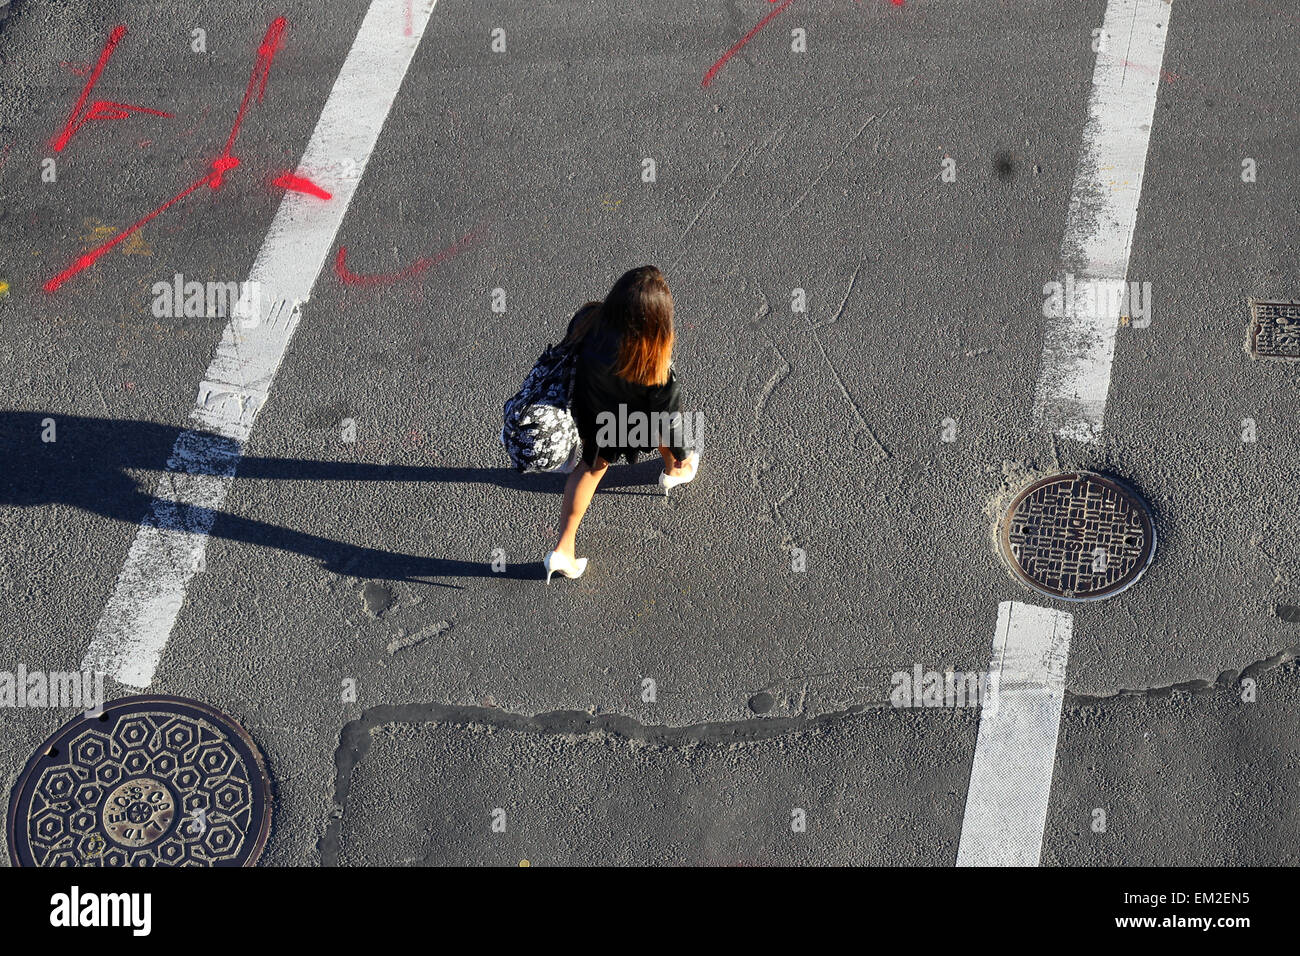 A person in a crosswalk. - Stock Image